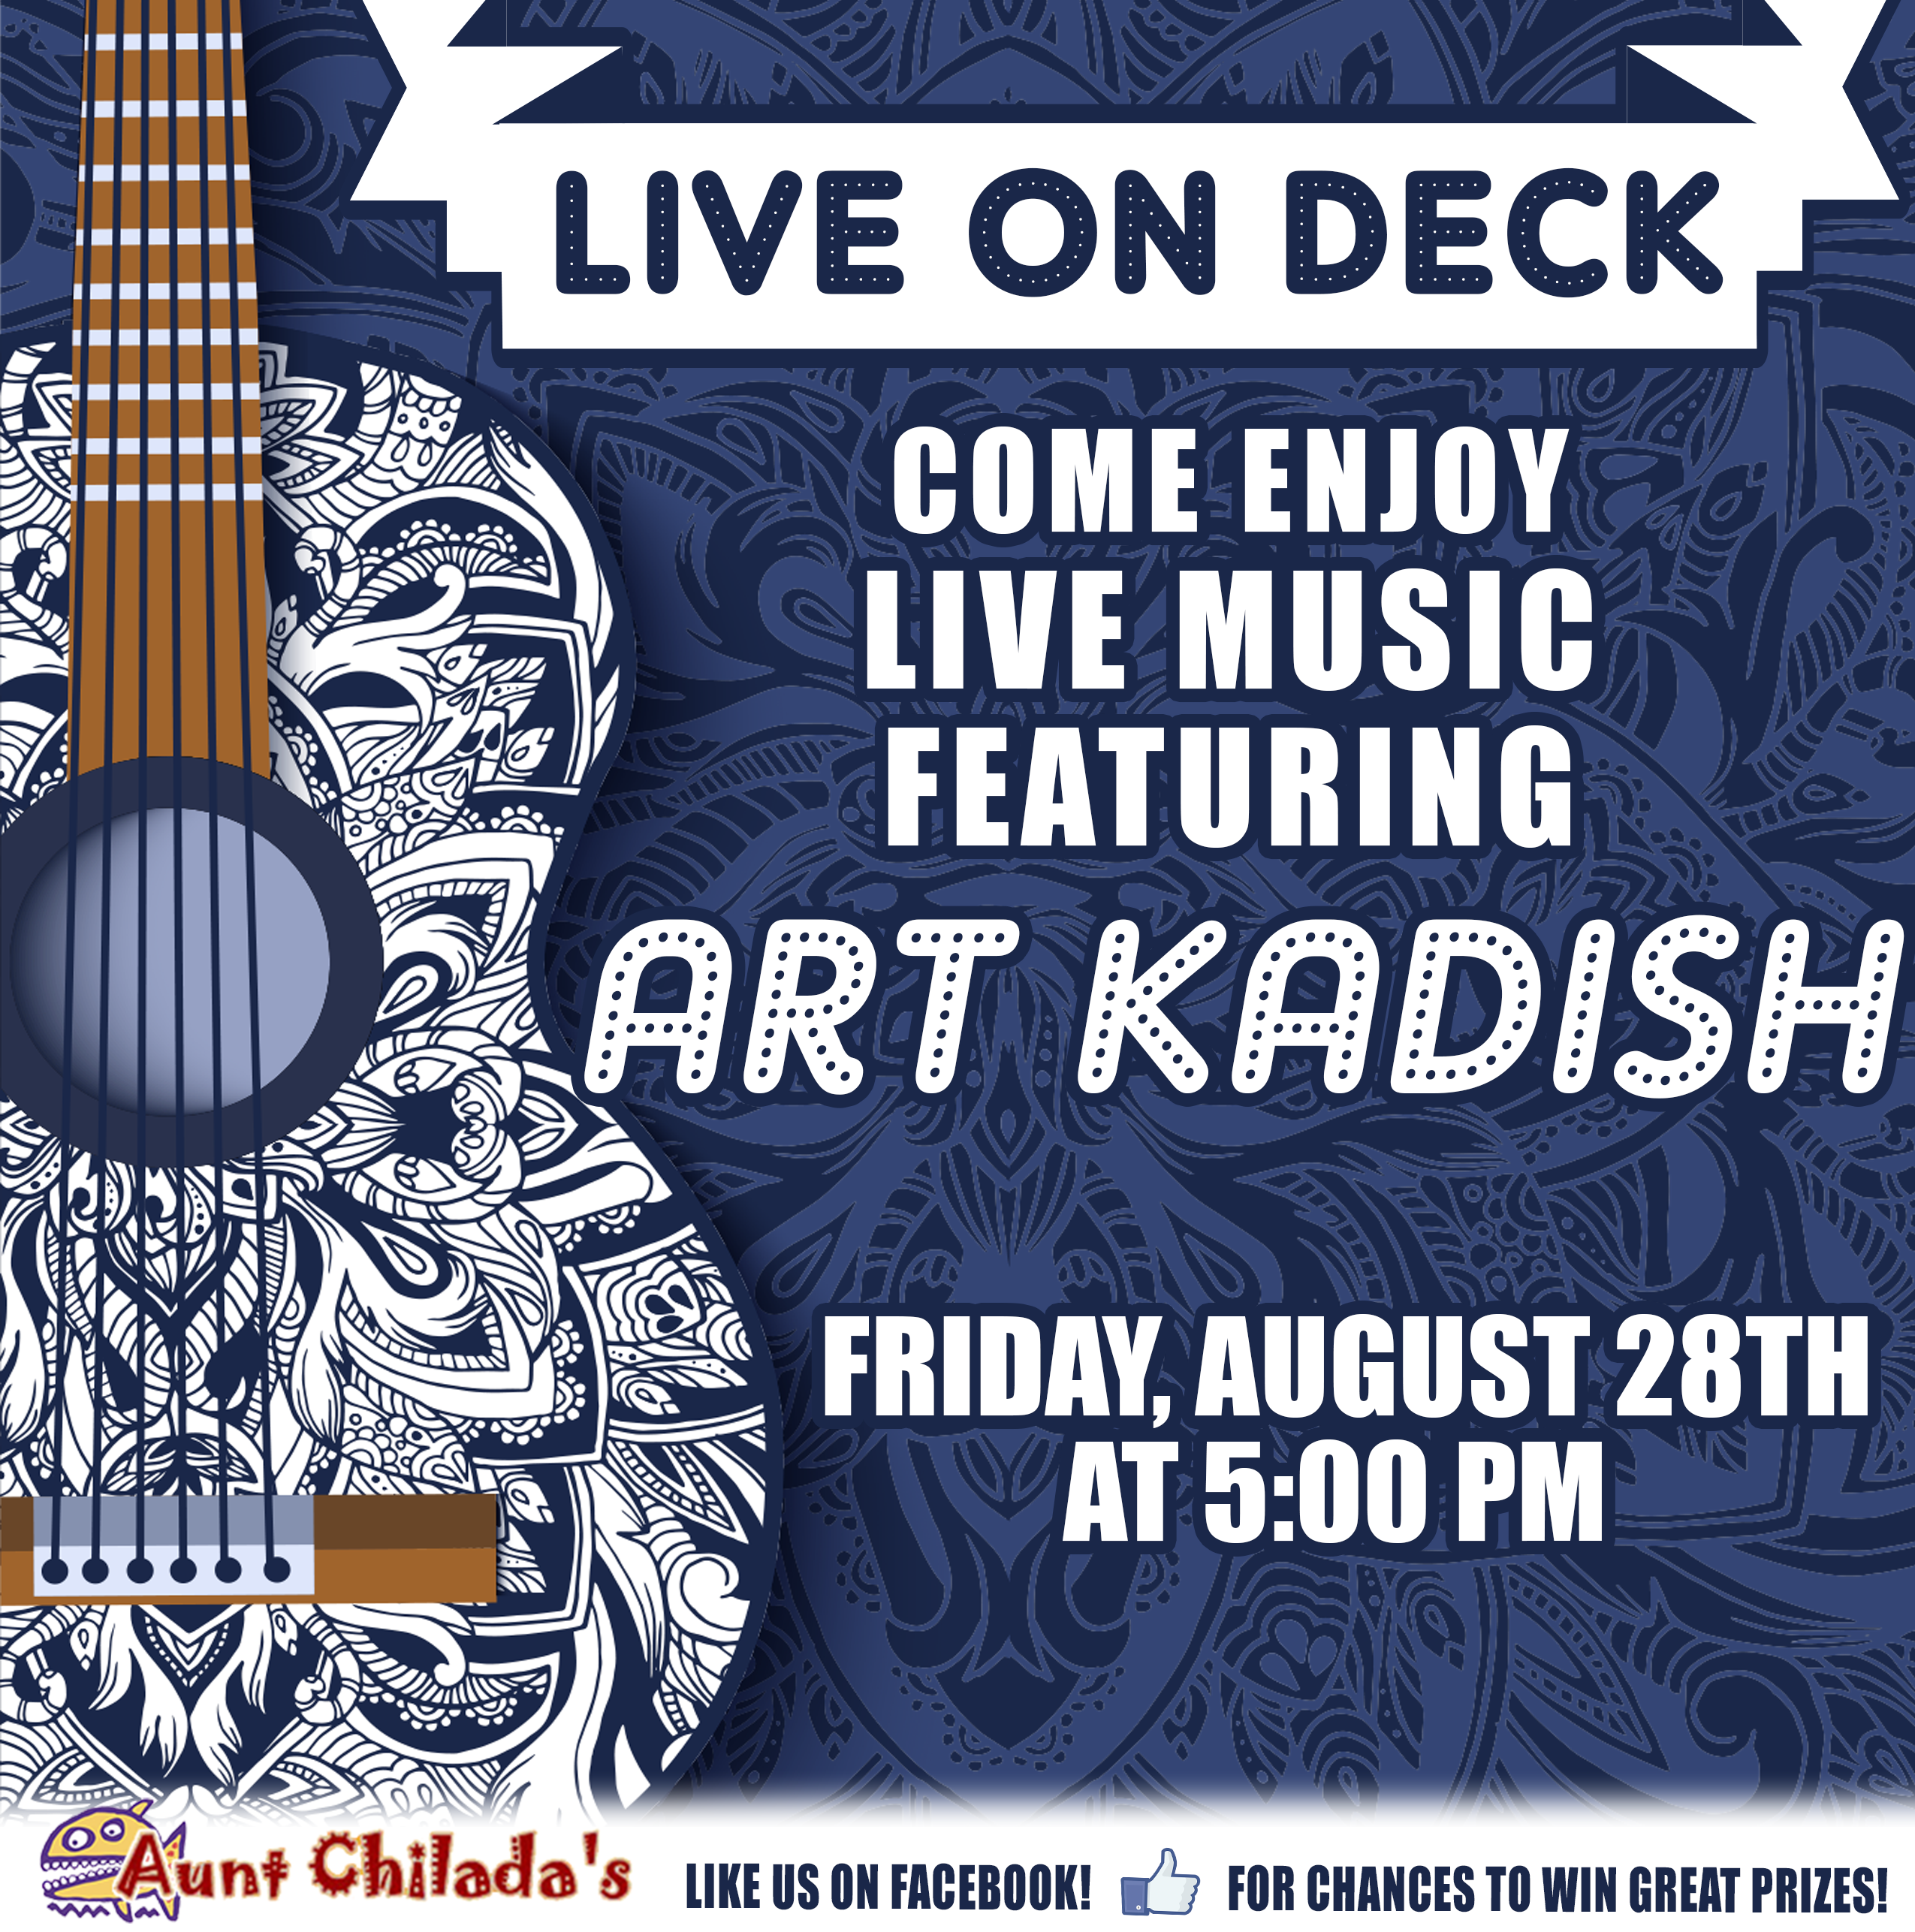 Live On Deck. Come Enjoy Live Music Featuring Art Kadish. Friday, August 28th at 5PM. aunt chilada's. like us on facebook! for chances to win great prizes!